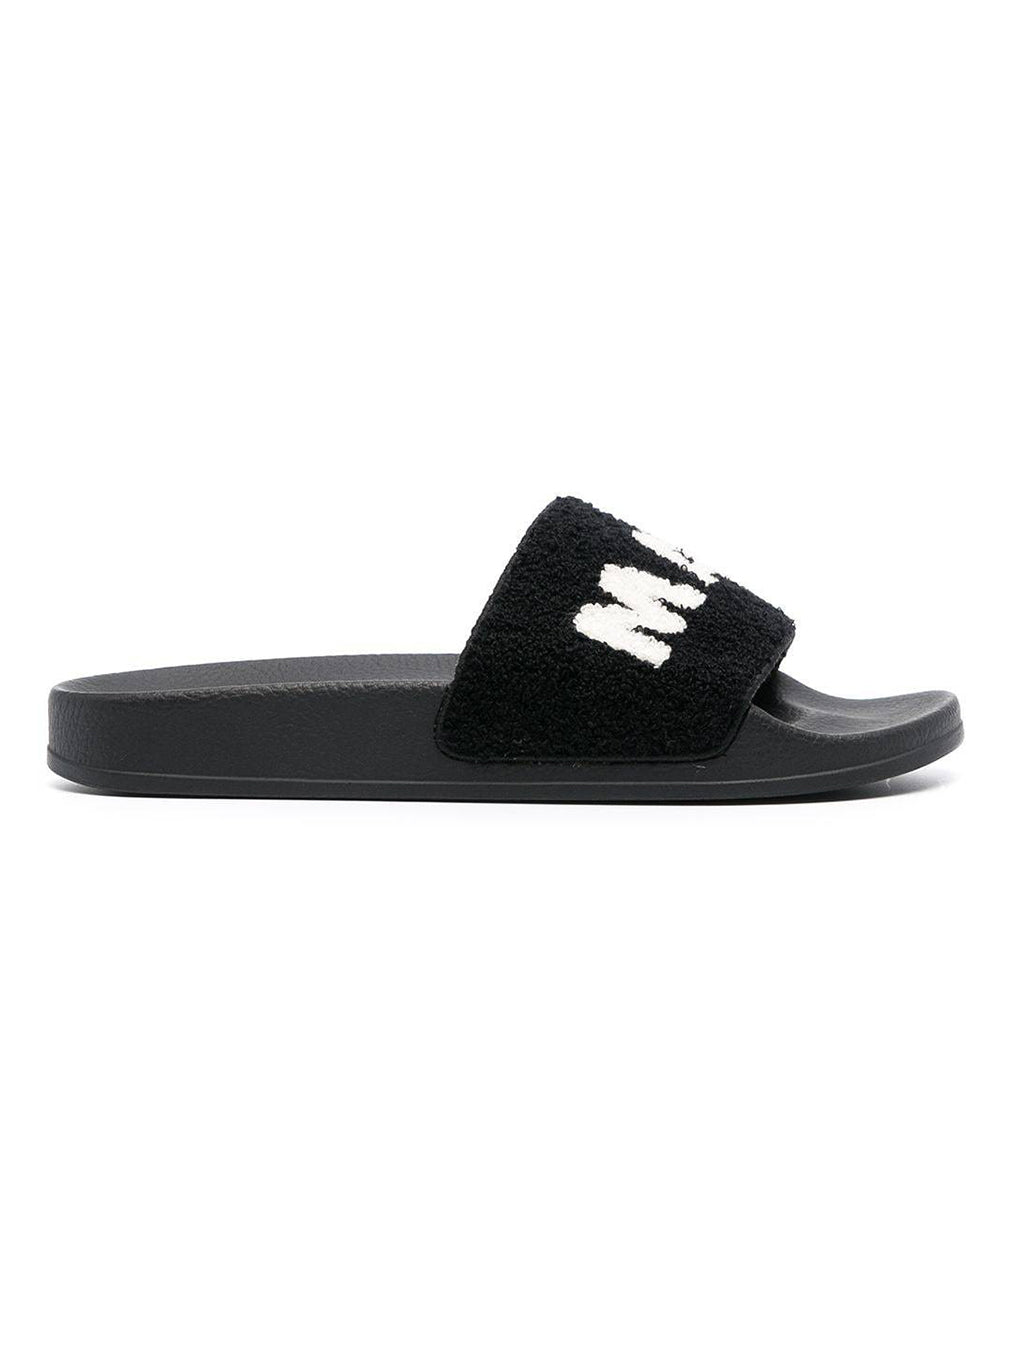 Black Terry Cloth Rubber Sandal